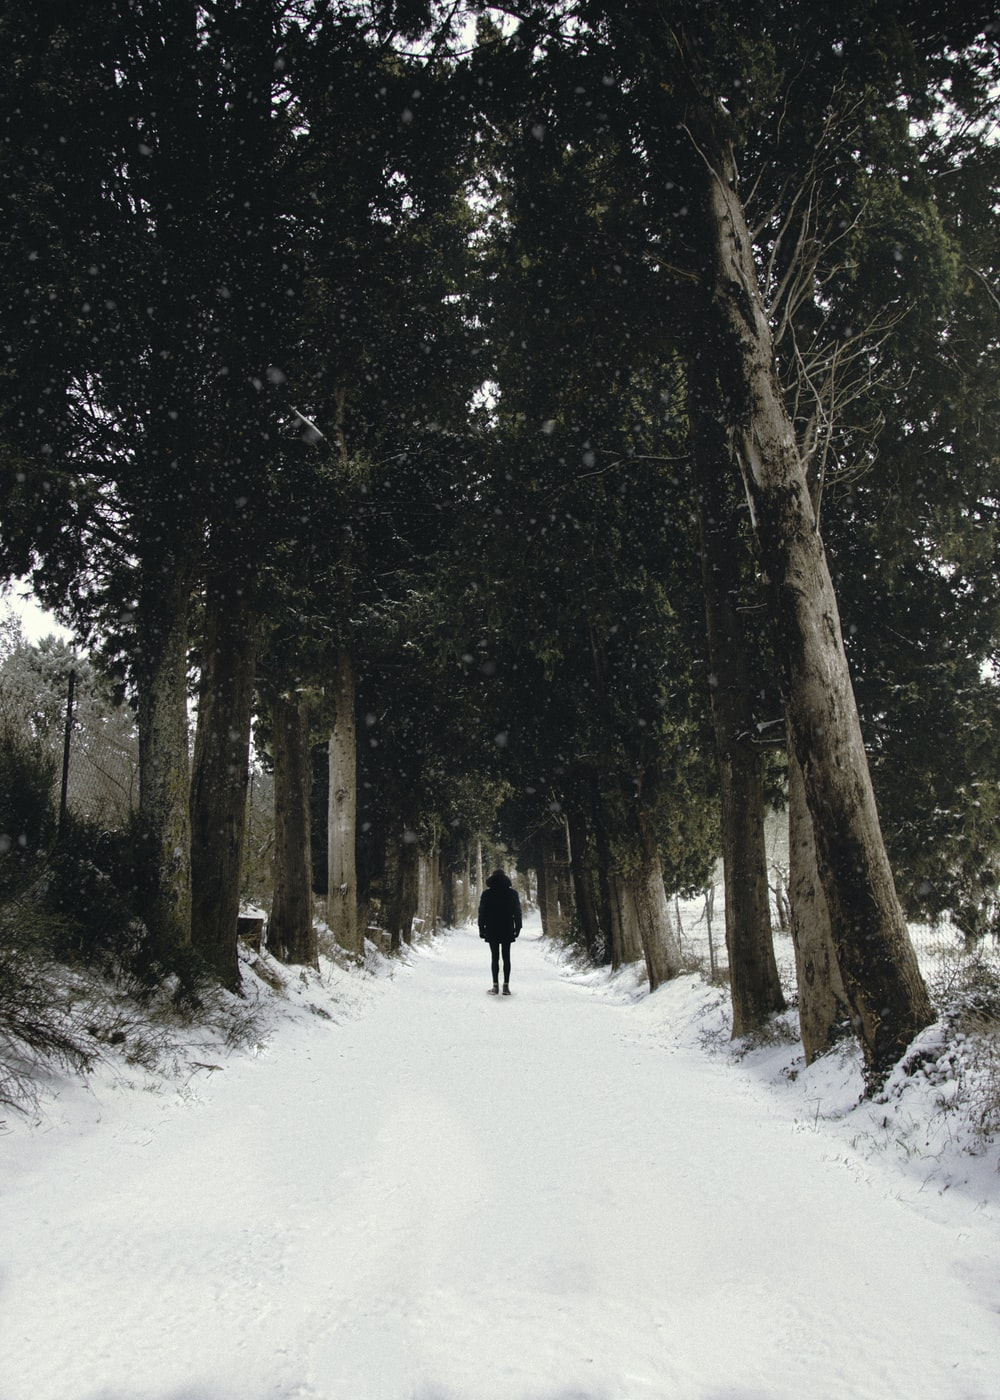 man walking on snow pathway between trees